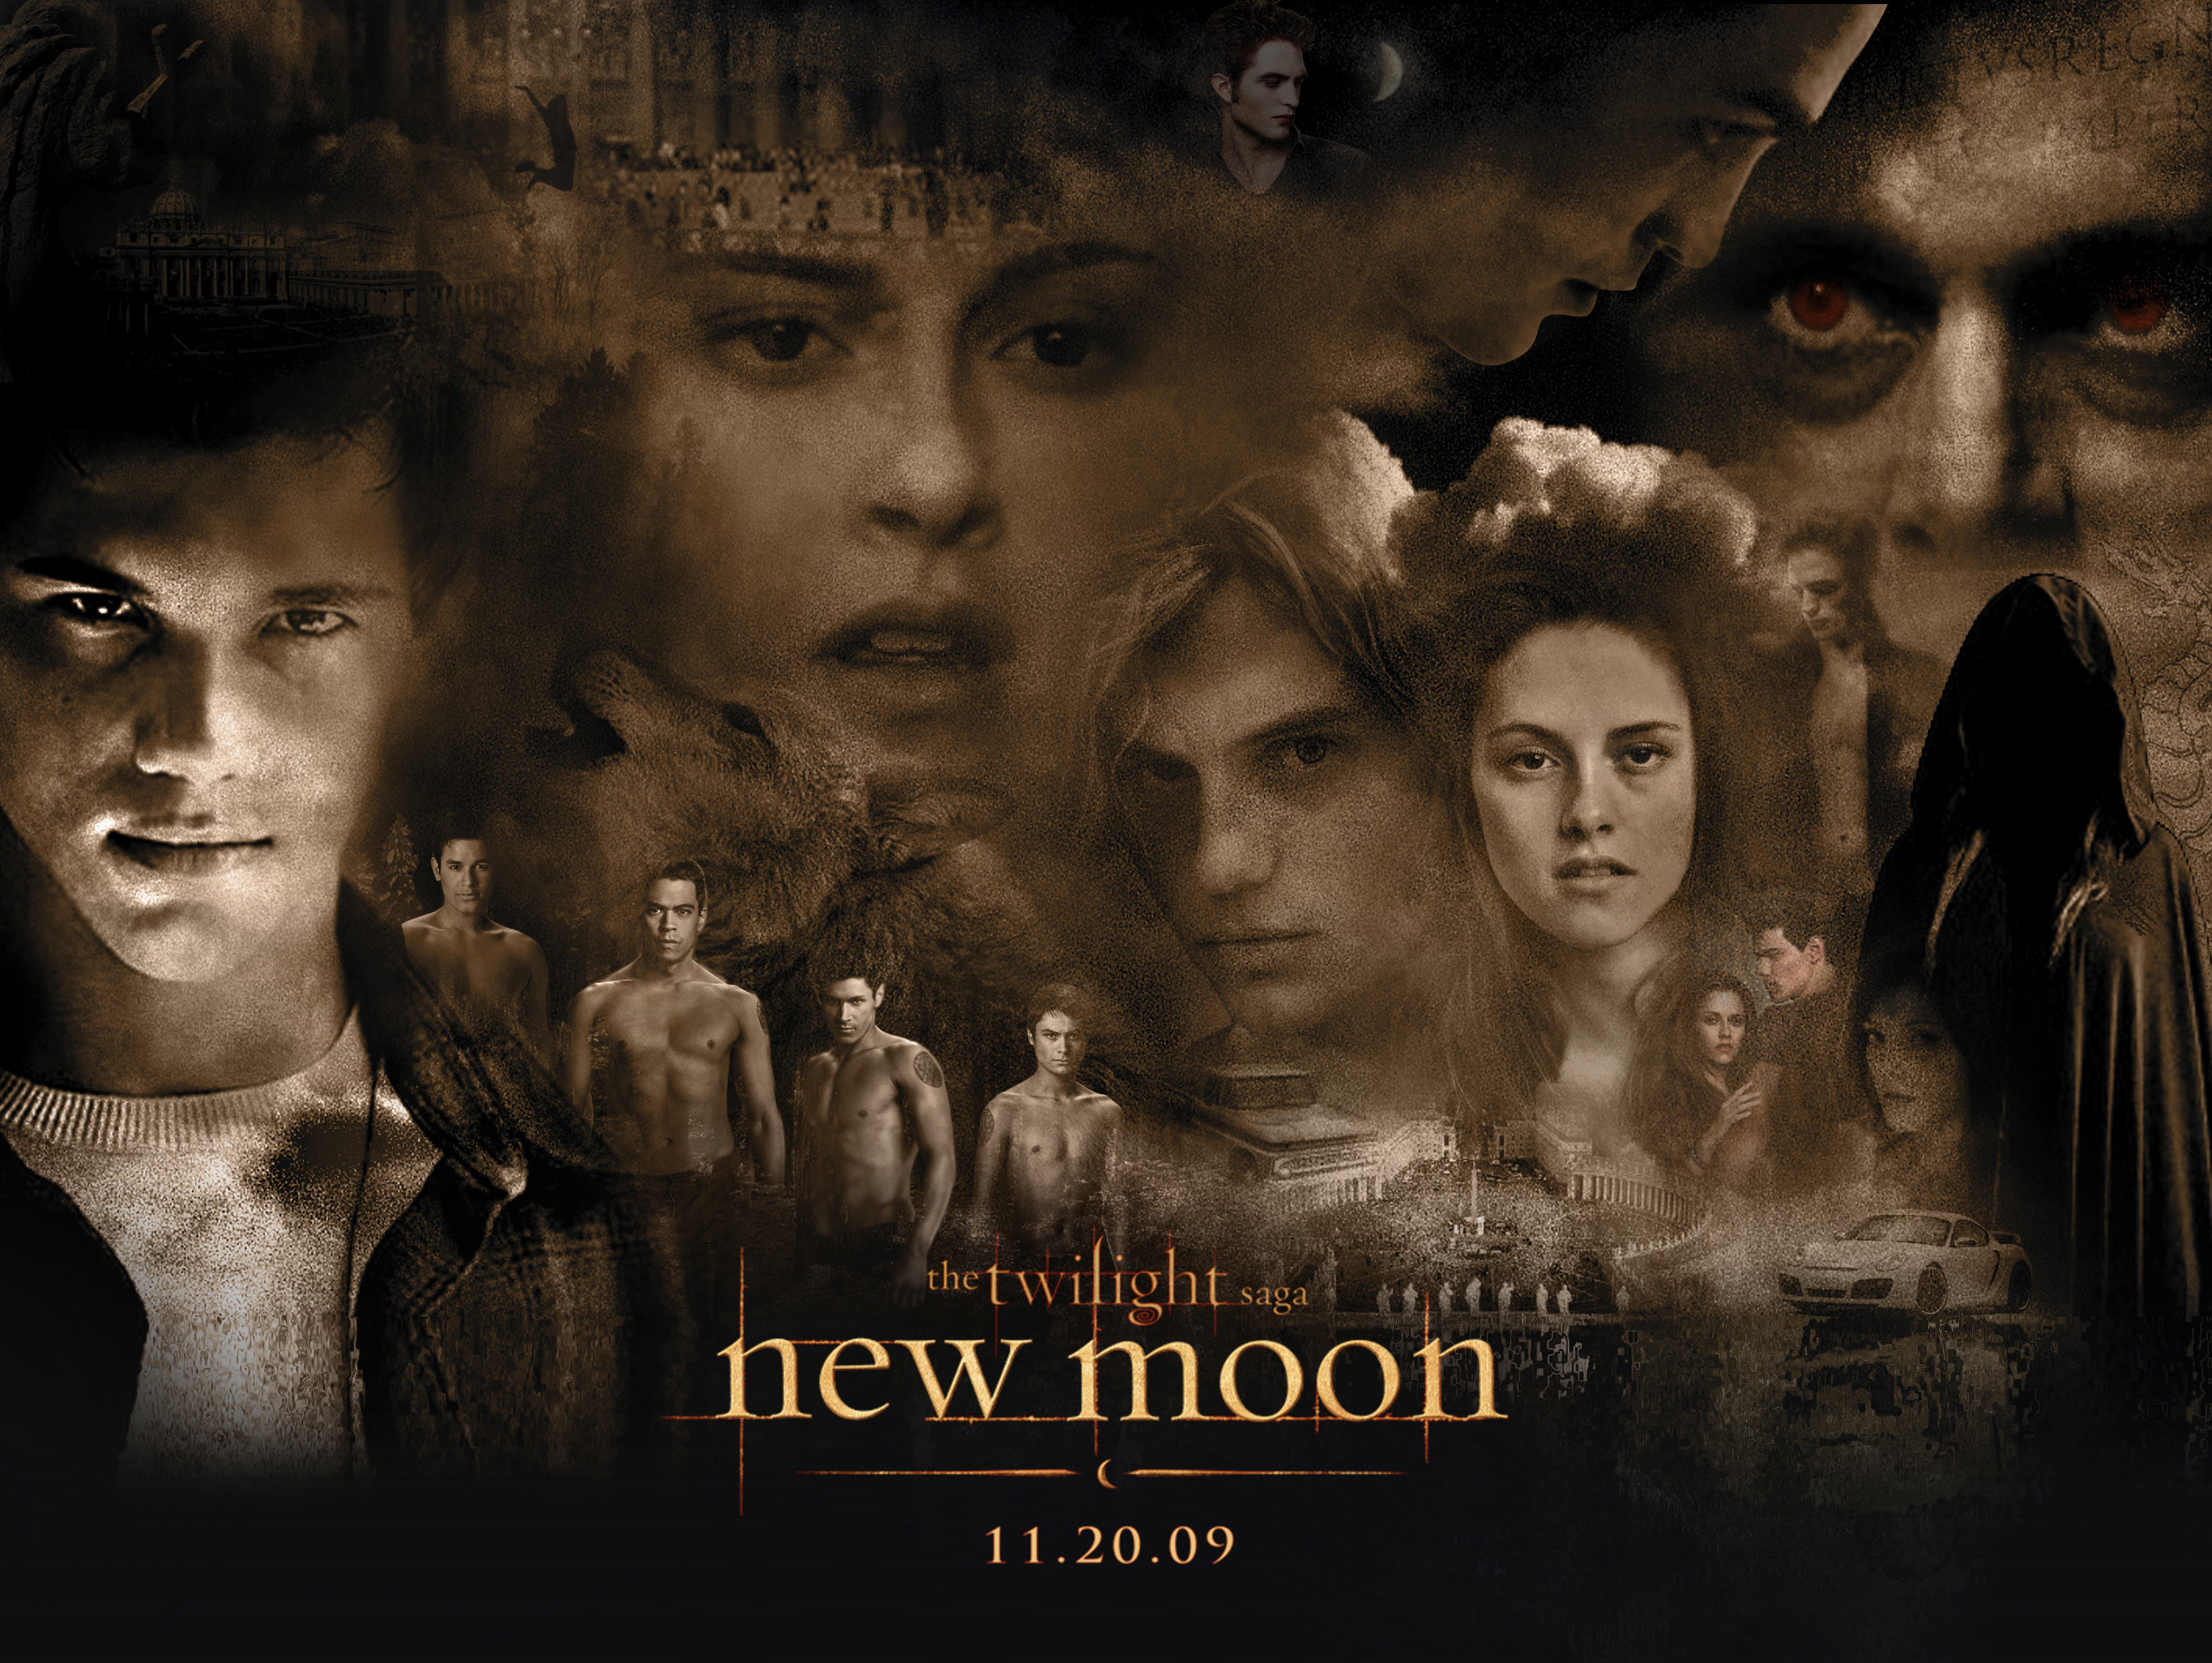 twilight saga new moon full movie online free no download